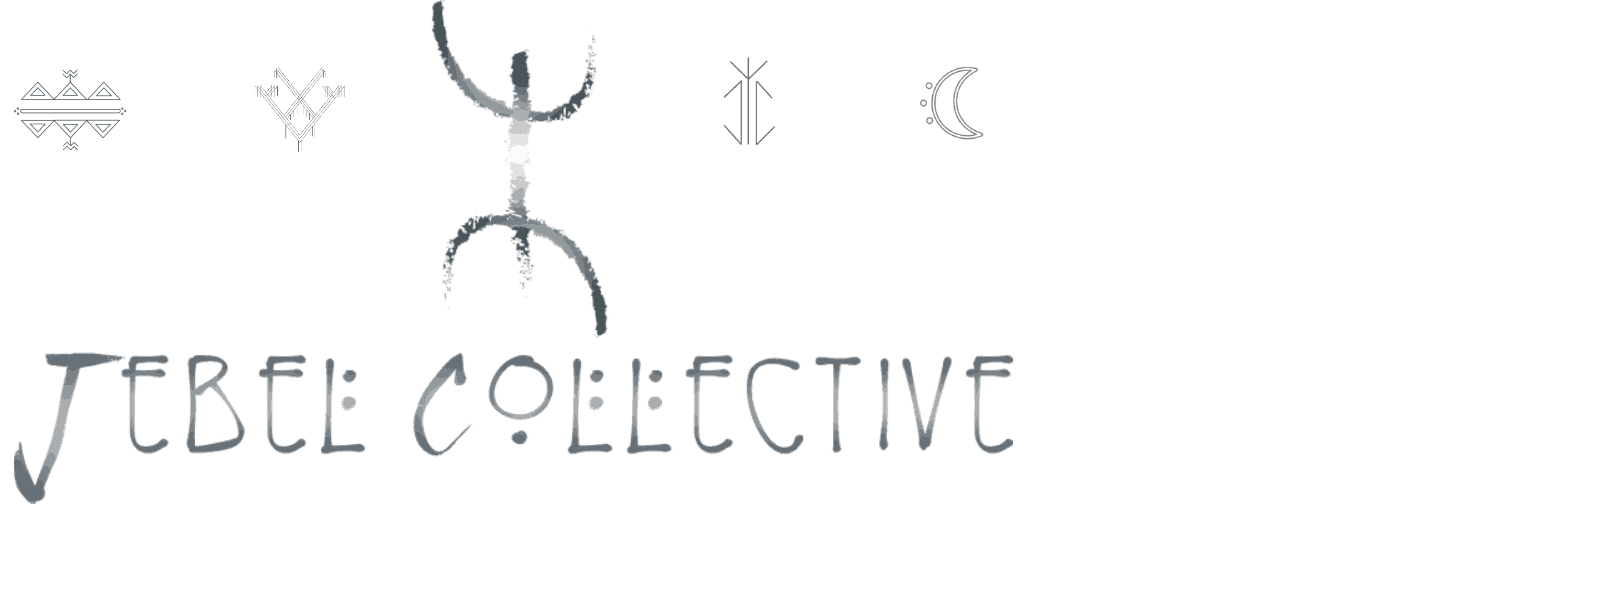 Jebel Collective